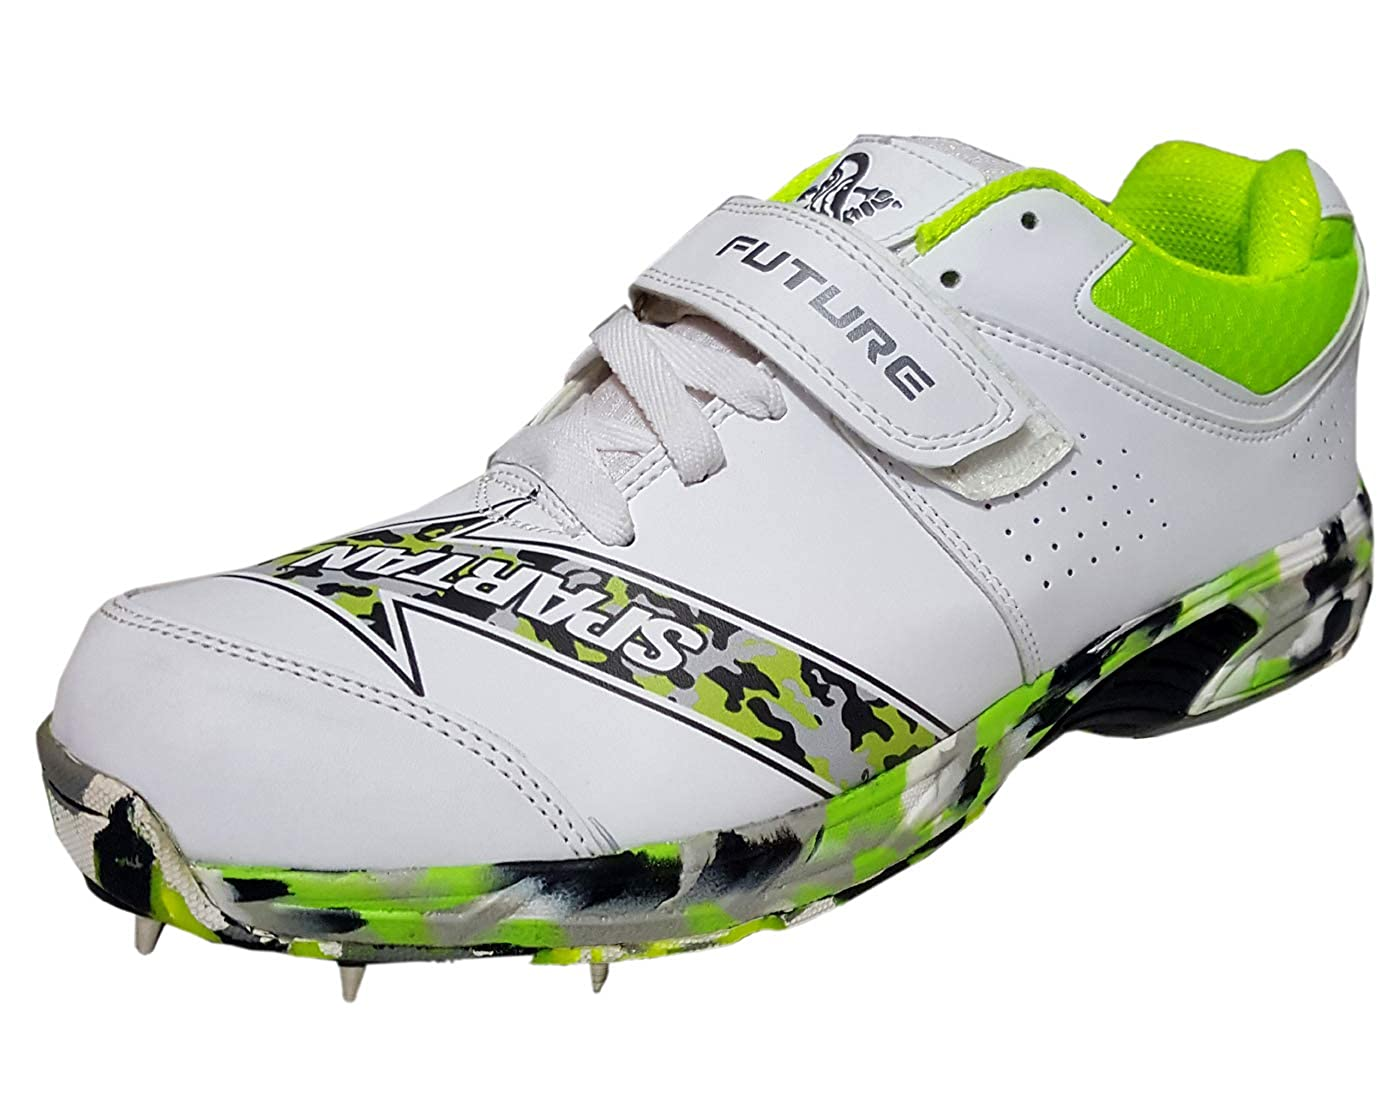 Future-2019 Cricket Spikes Shoes